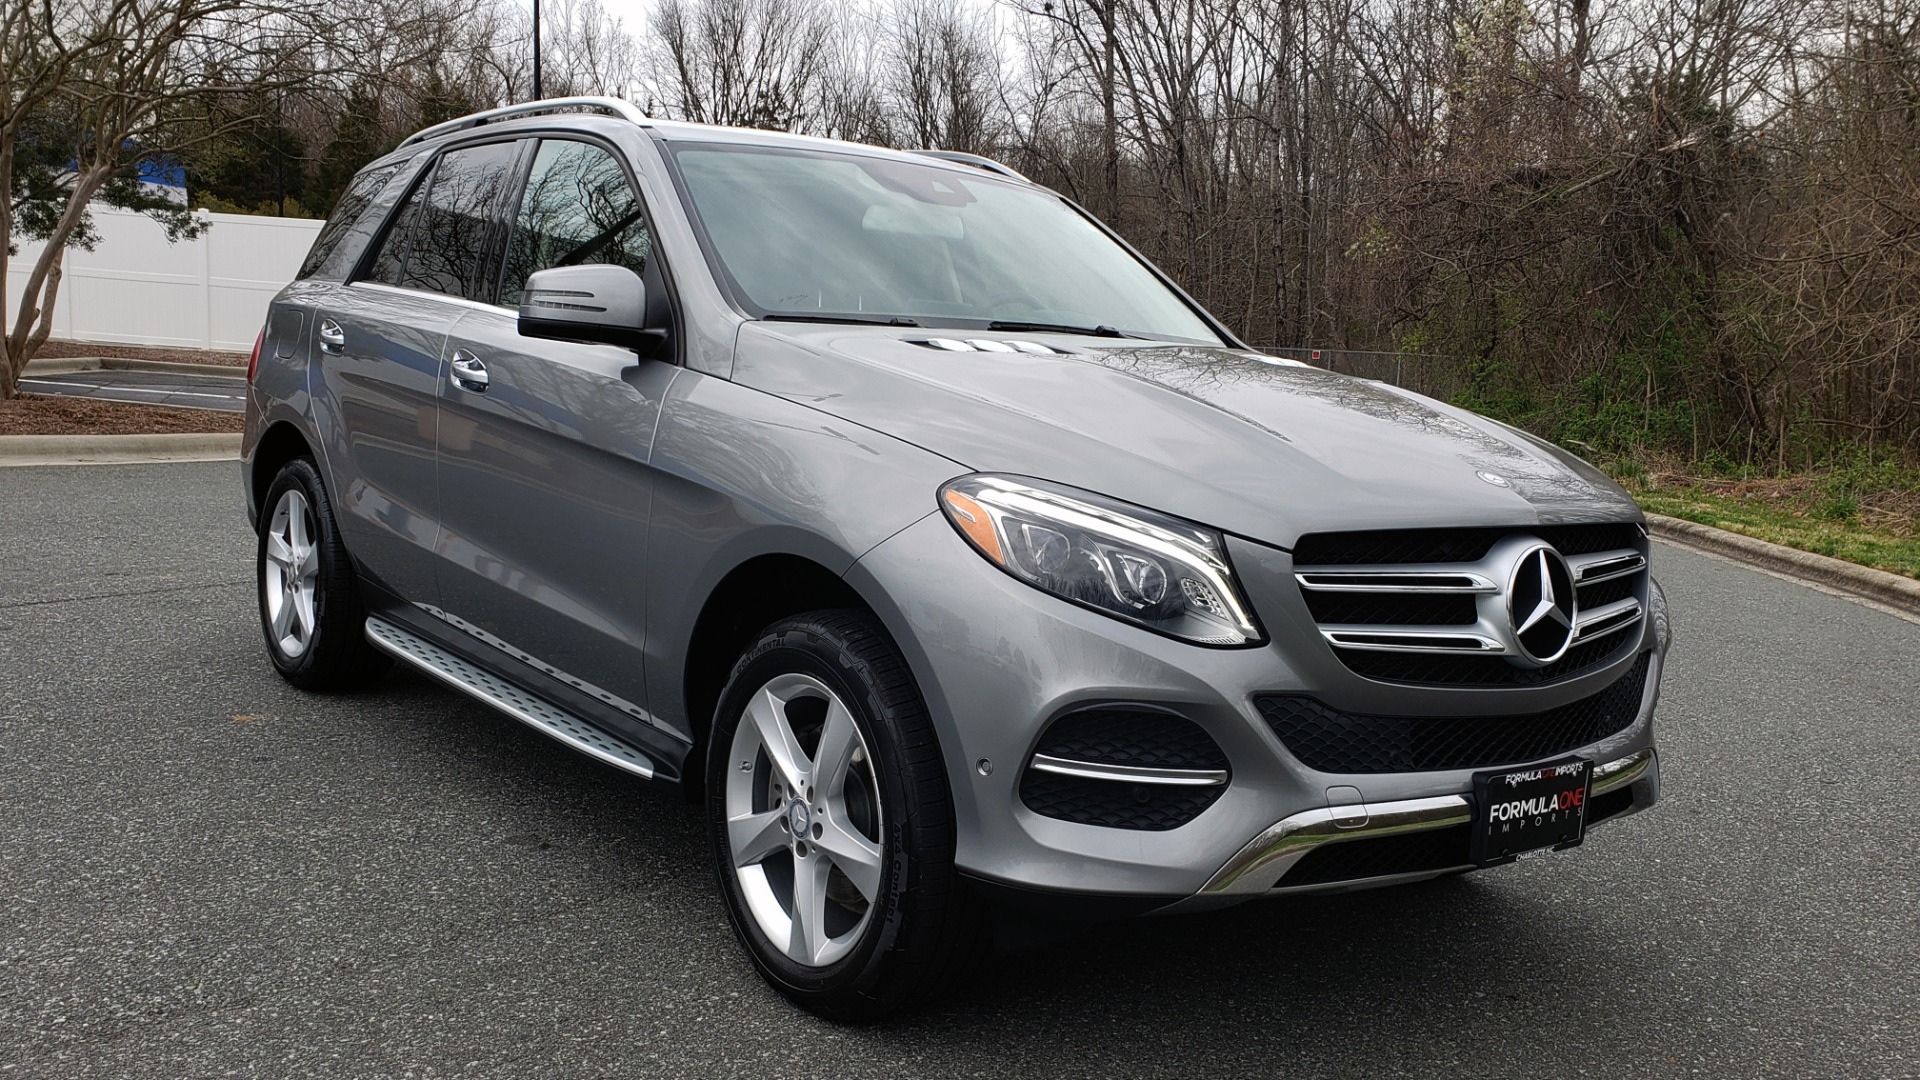 Used 2016 Mercedes-Benz GLE 350 4MATIC / PREMIUM / LIGHTING / NAV / SUNROOF / HTD STS / REAR for sale Sold at Formula Imports in Charlotte NC 28227 4